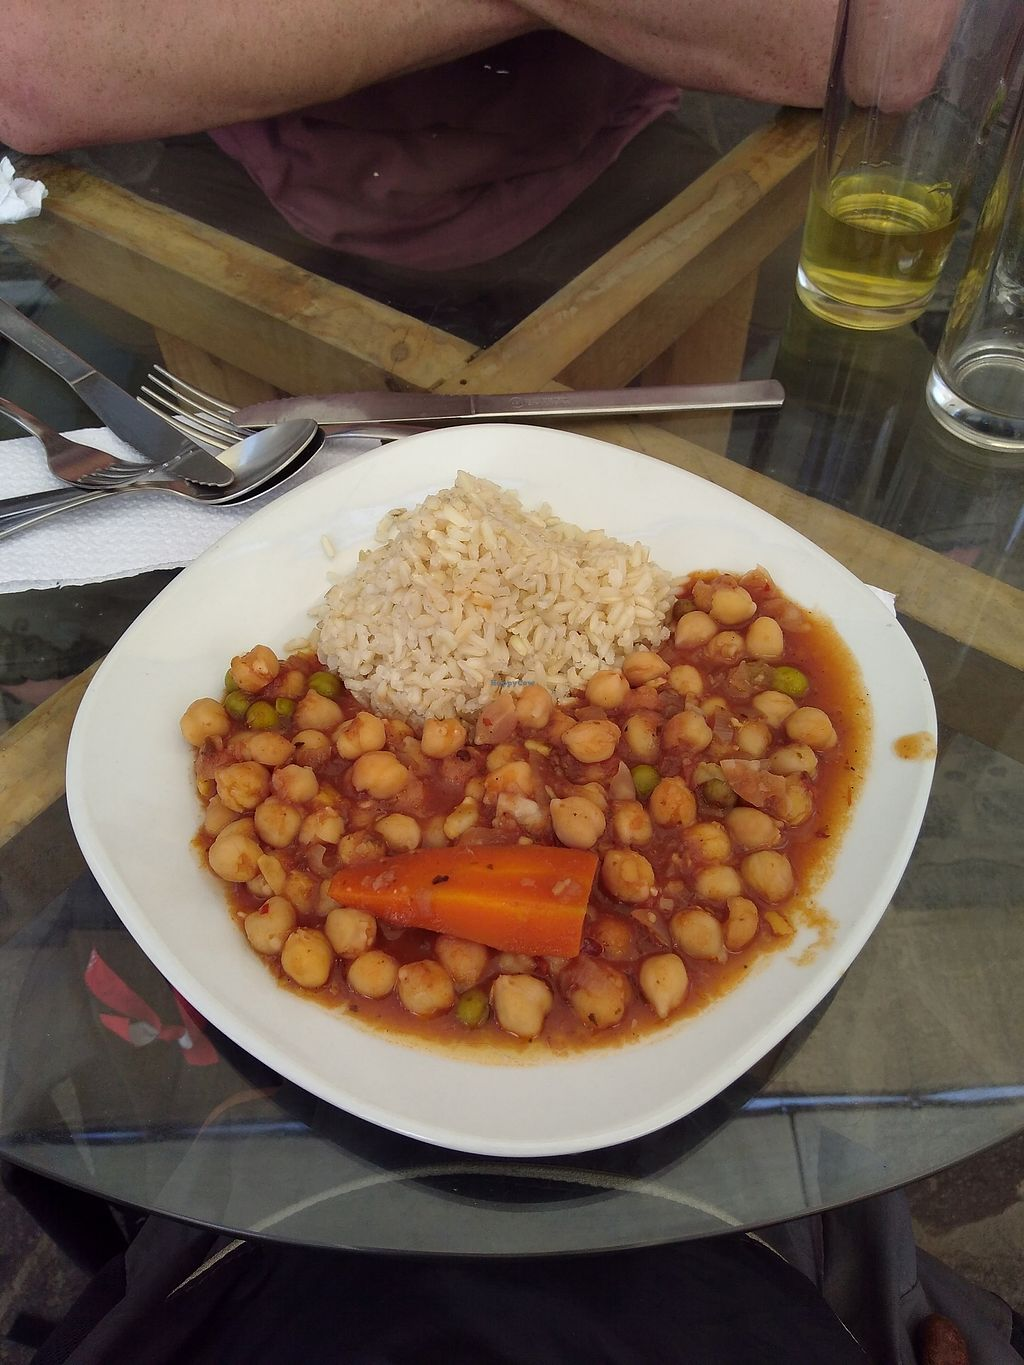 "Photo of Omphalos  by <a href=""/members/profile/emzie1983"">emzie1983</a> <br/>Chickpeas and brown rice almuerzo <br/> March 30, 2018  - <a href='/contact/abuse/image/85879/378094'>Report</a>"